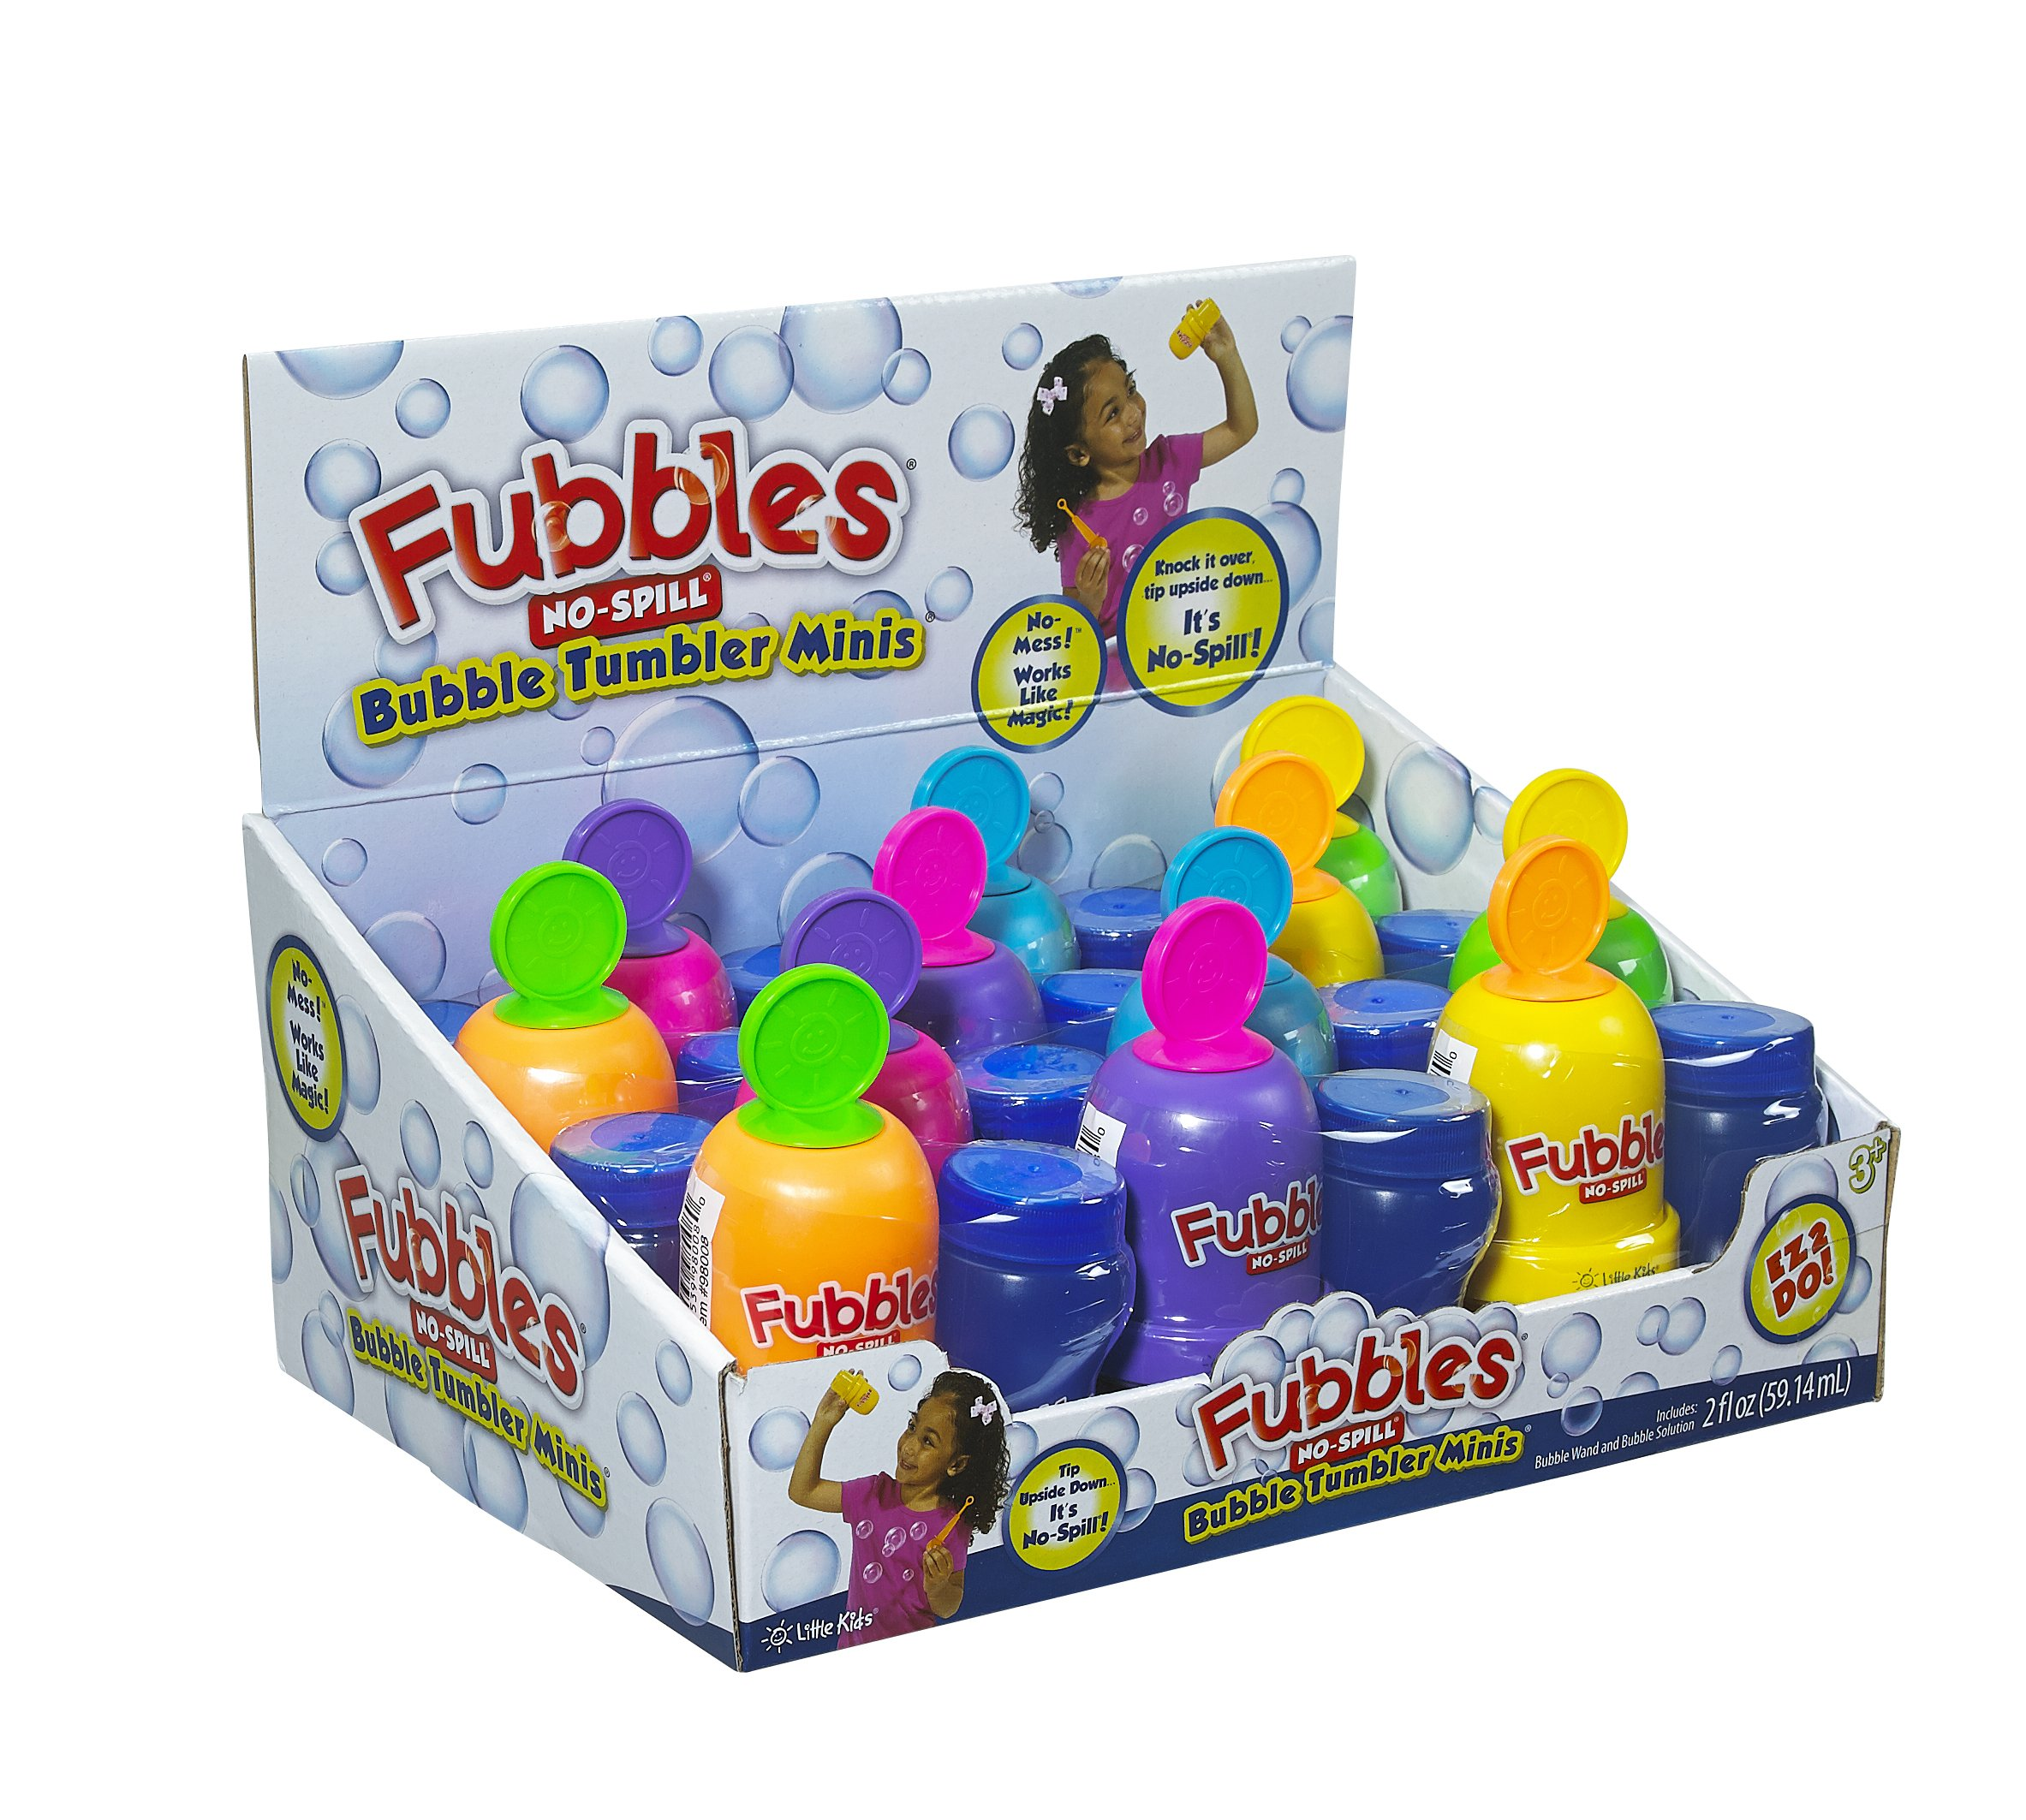 Little Kids Fubbles No-Spill Bubble Tumbler Minis Party Favor 12 pack, Includes 2oz bubble solution and a wand per bottle (assorted colors)